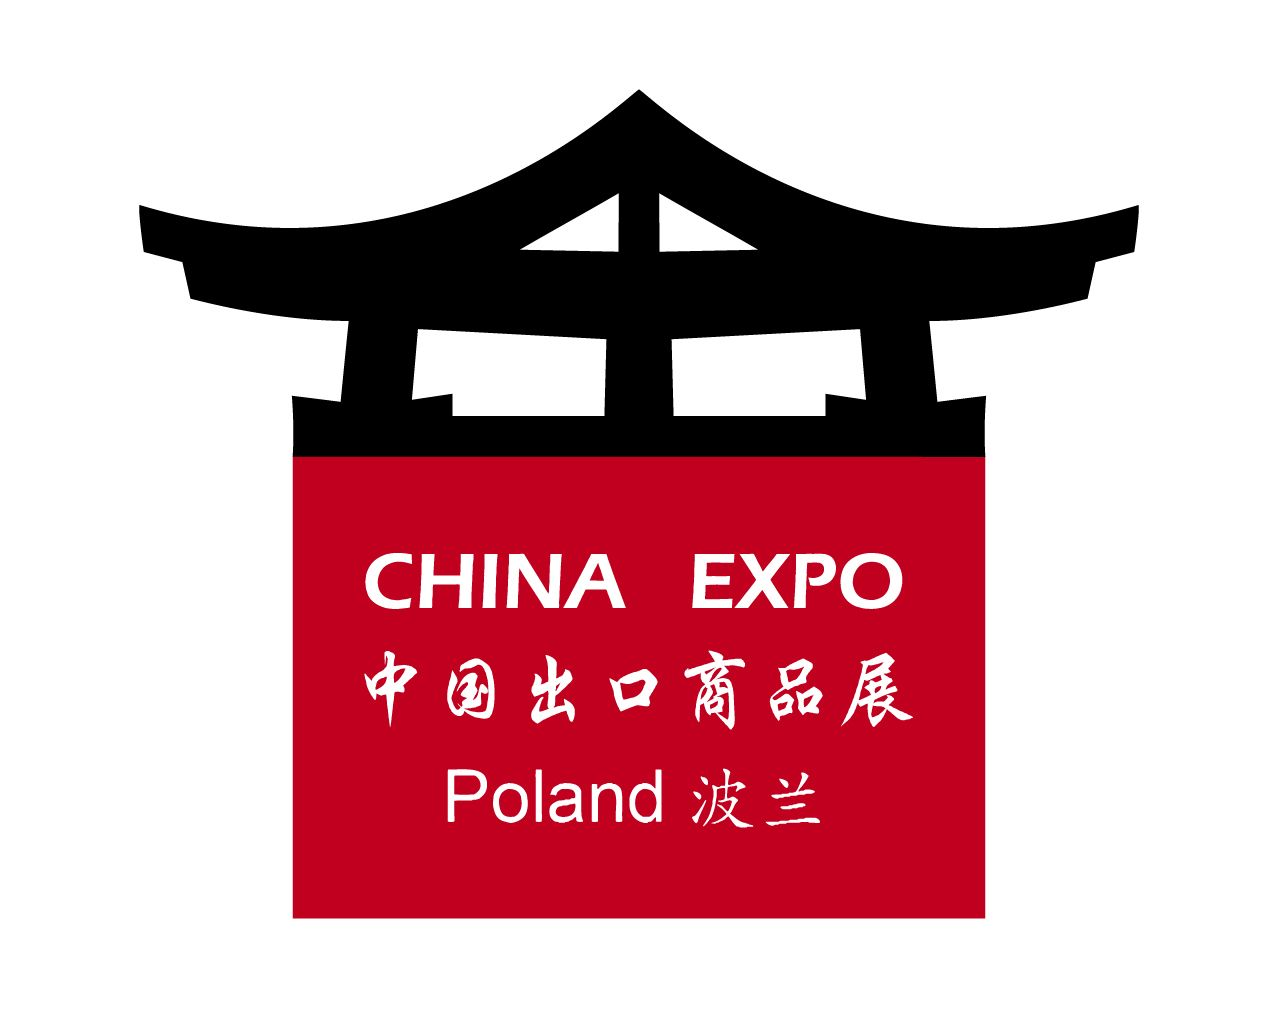 China Expo Poland 2013 - logo